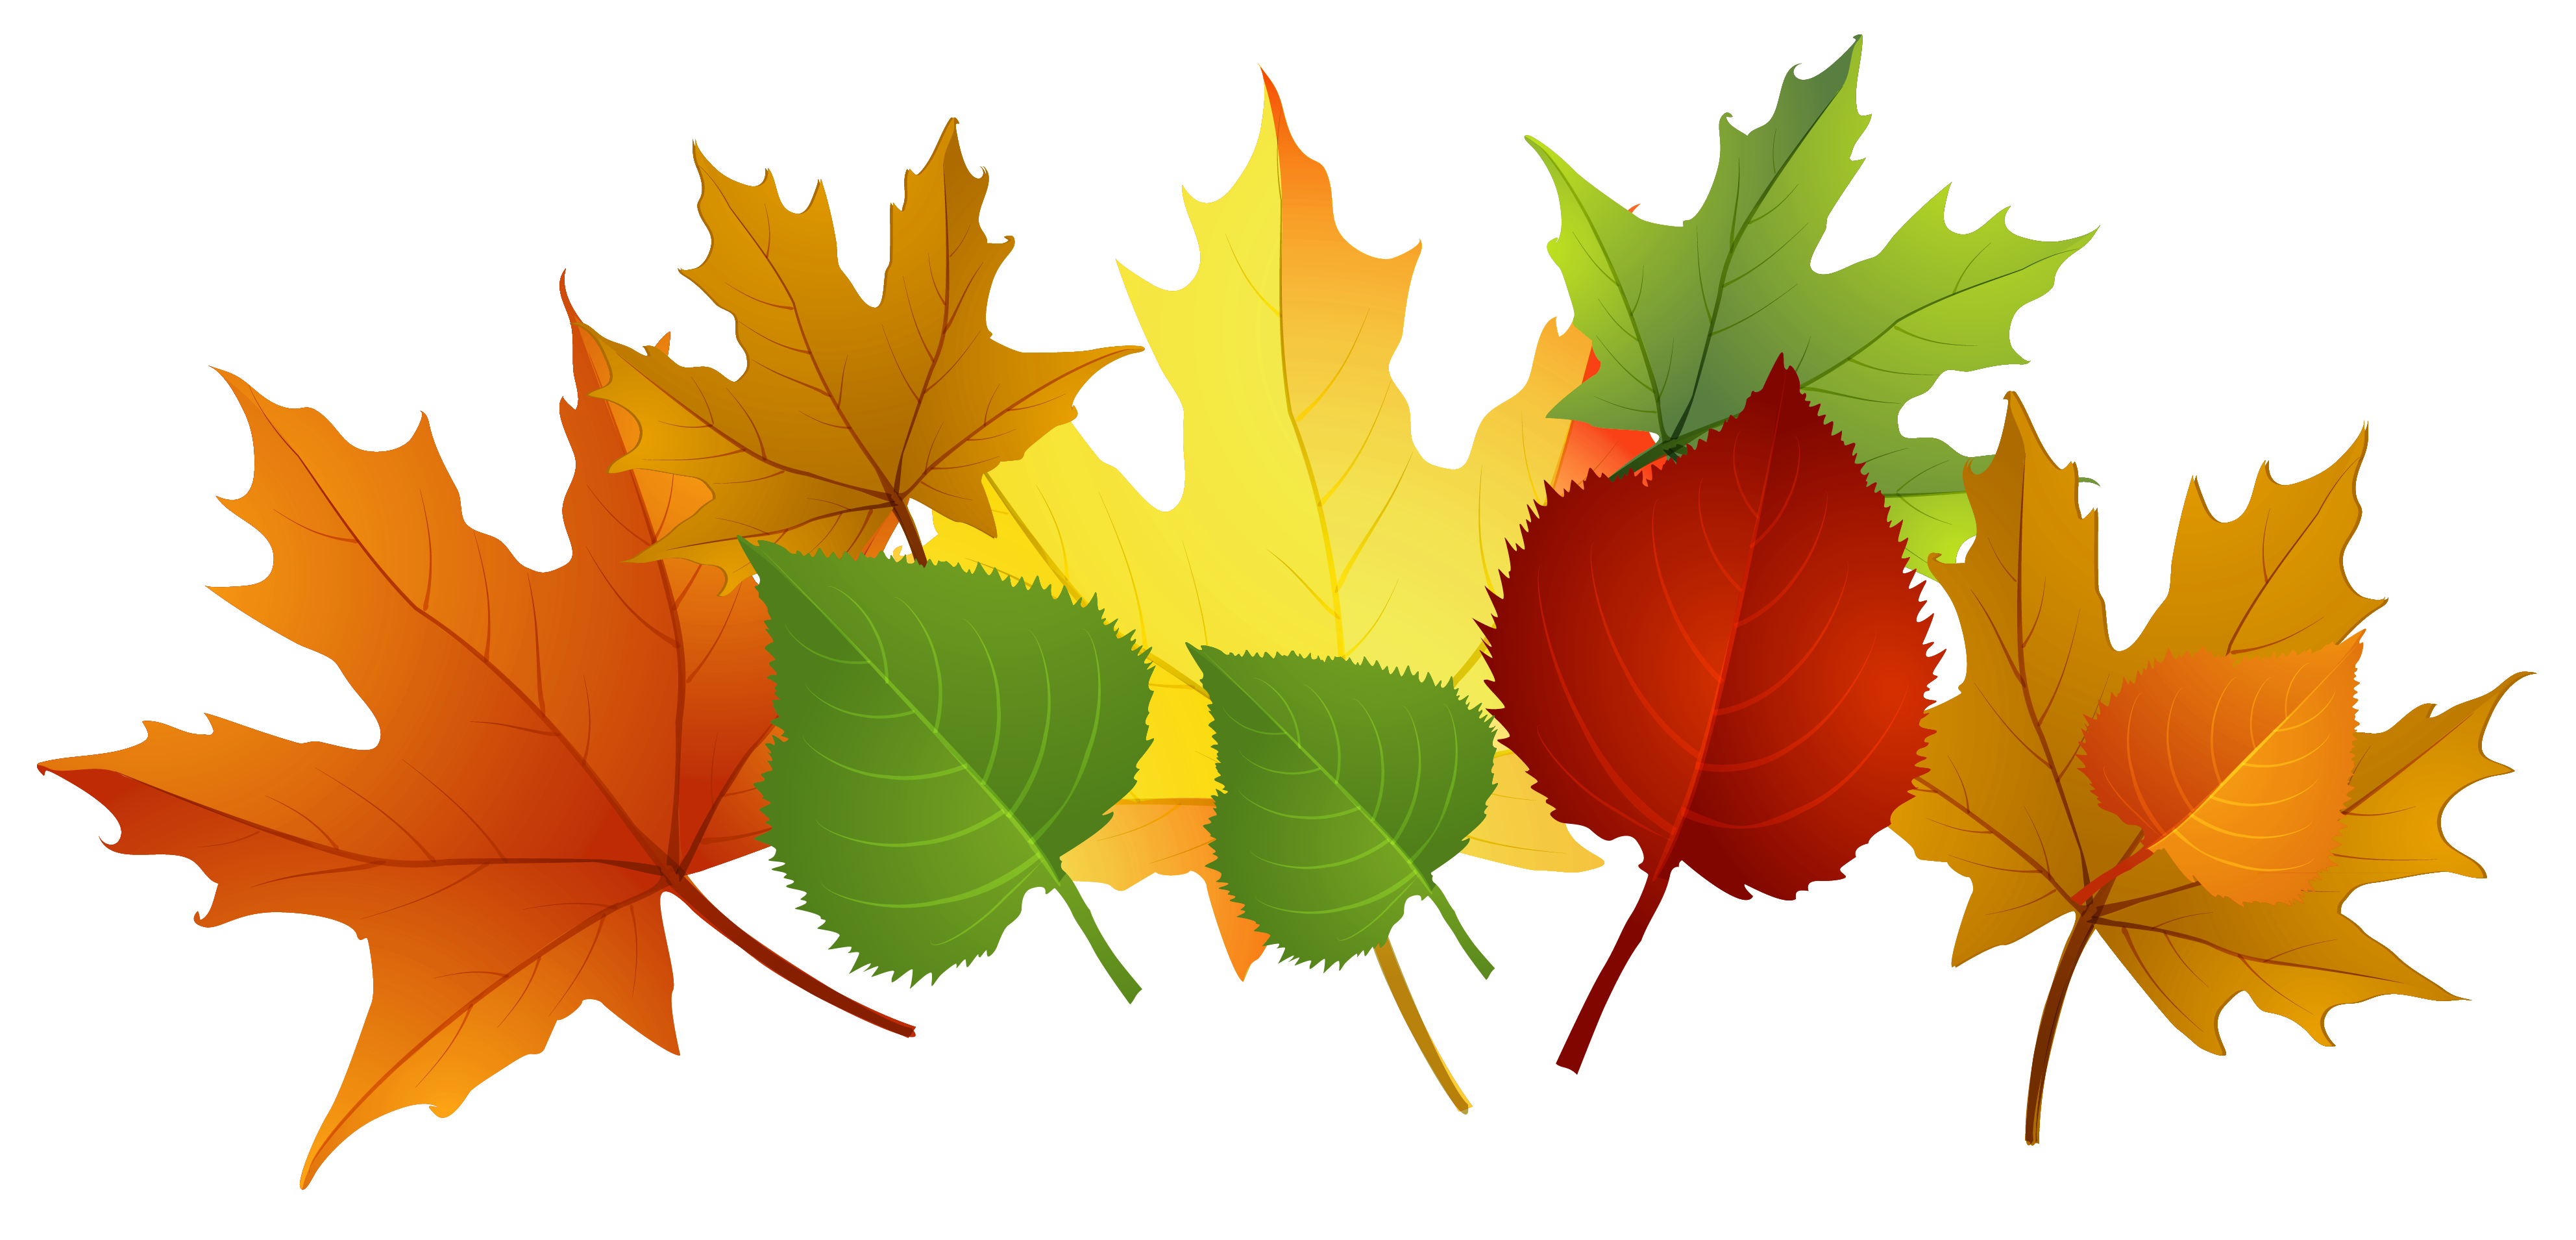 Fall Clip Art Images Free Cli - Autumn Leaves Clip Art